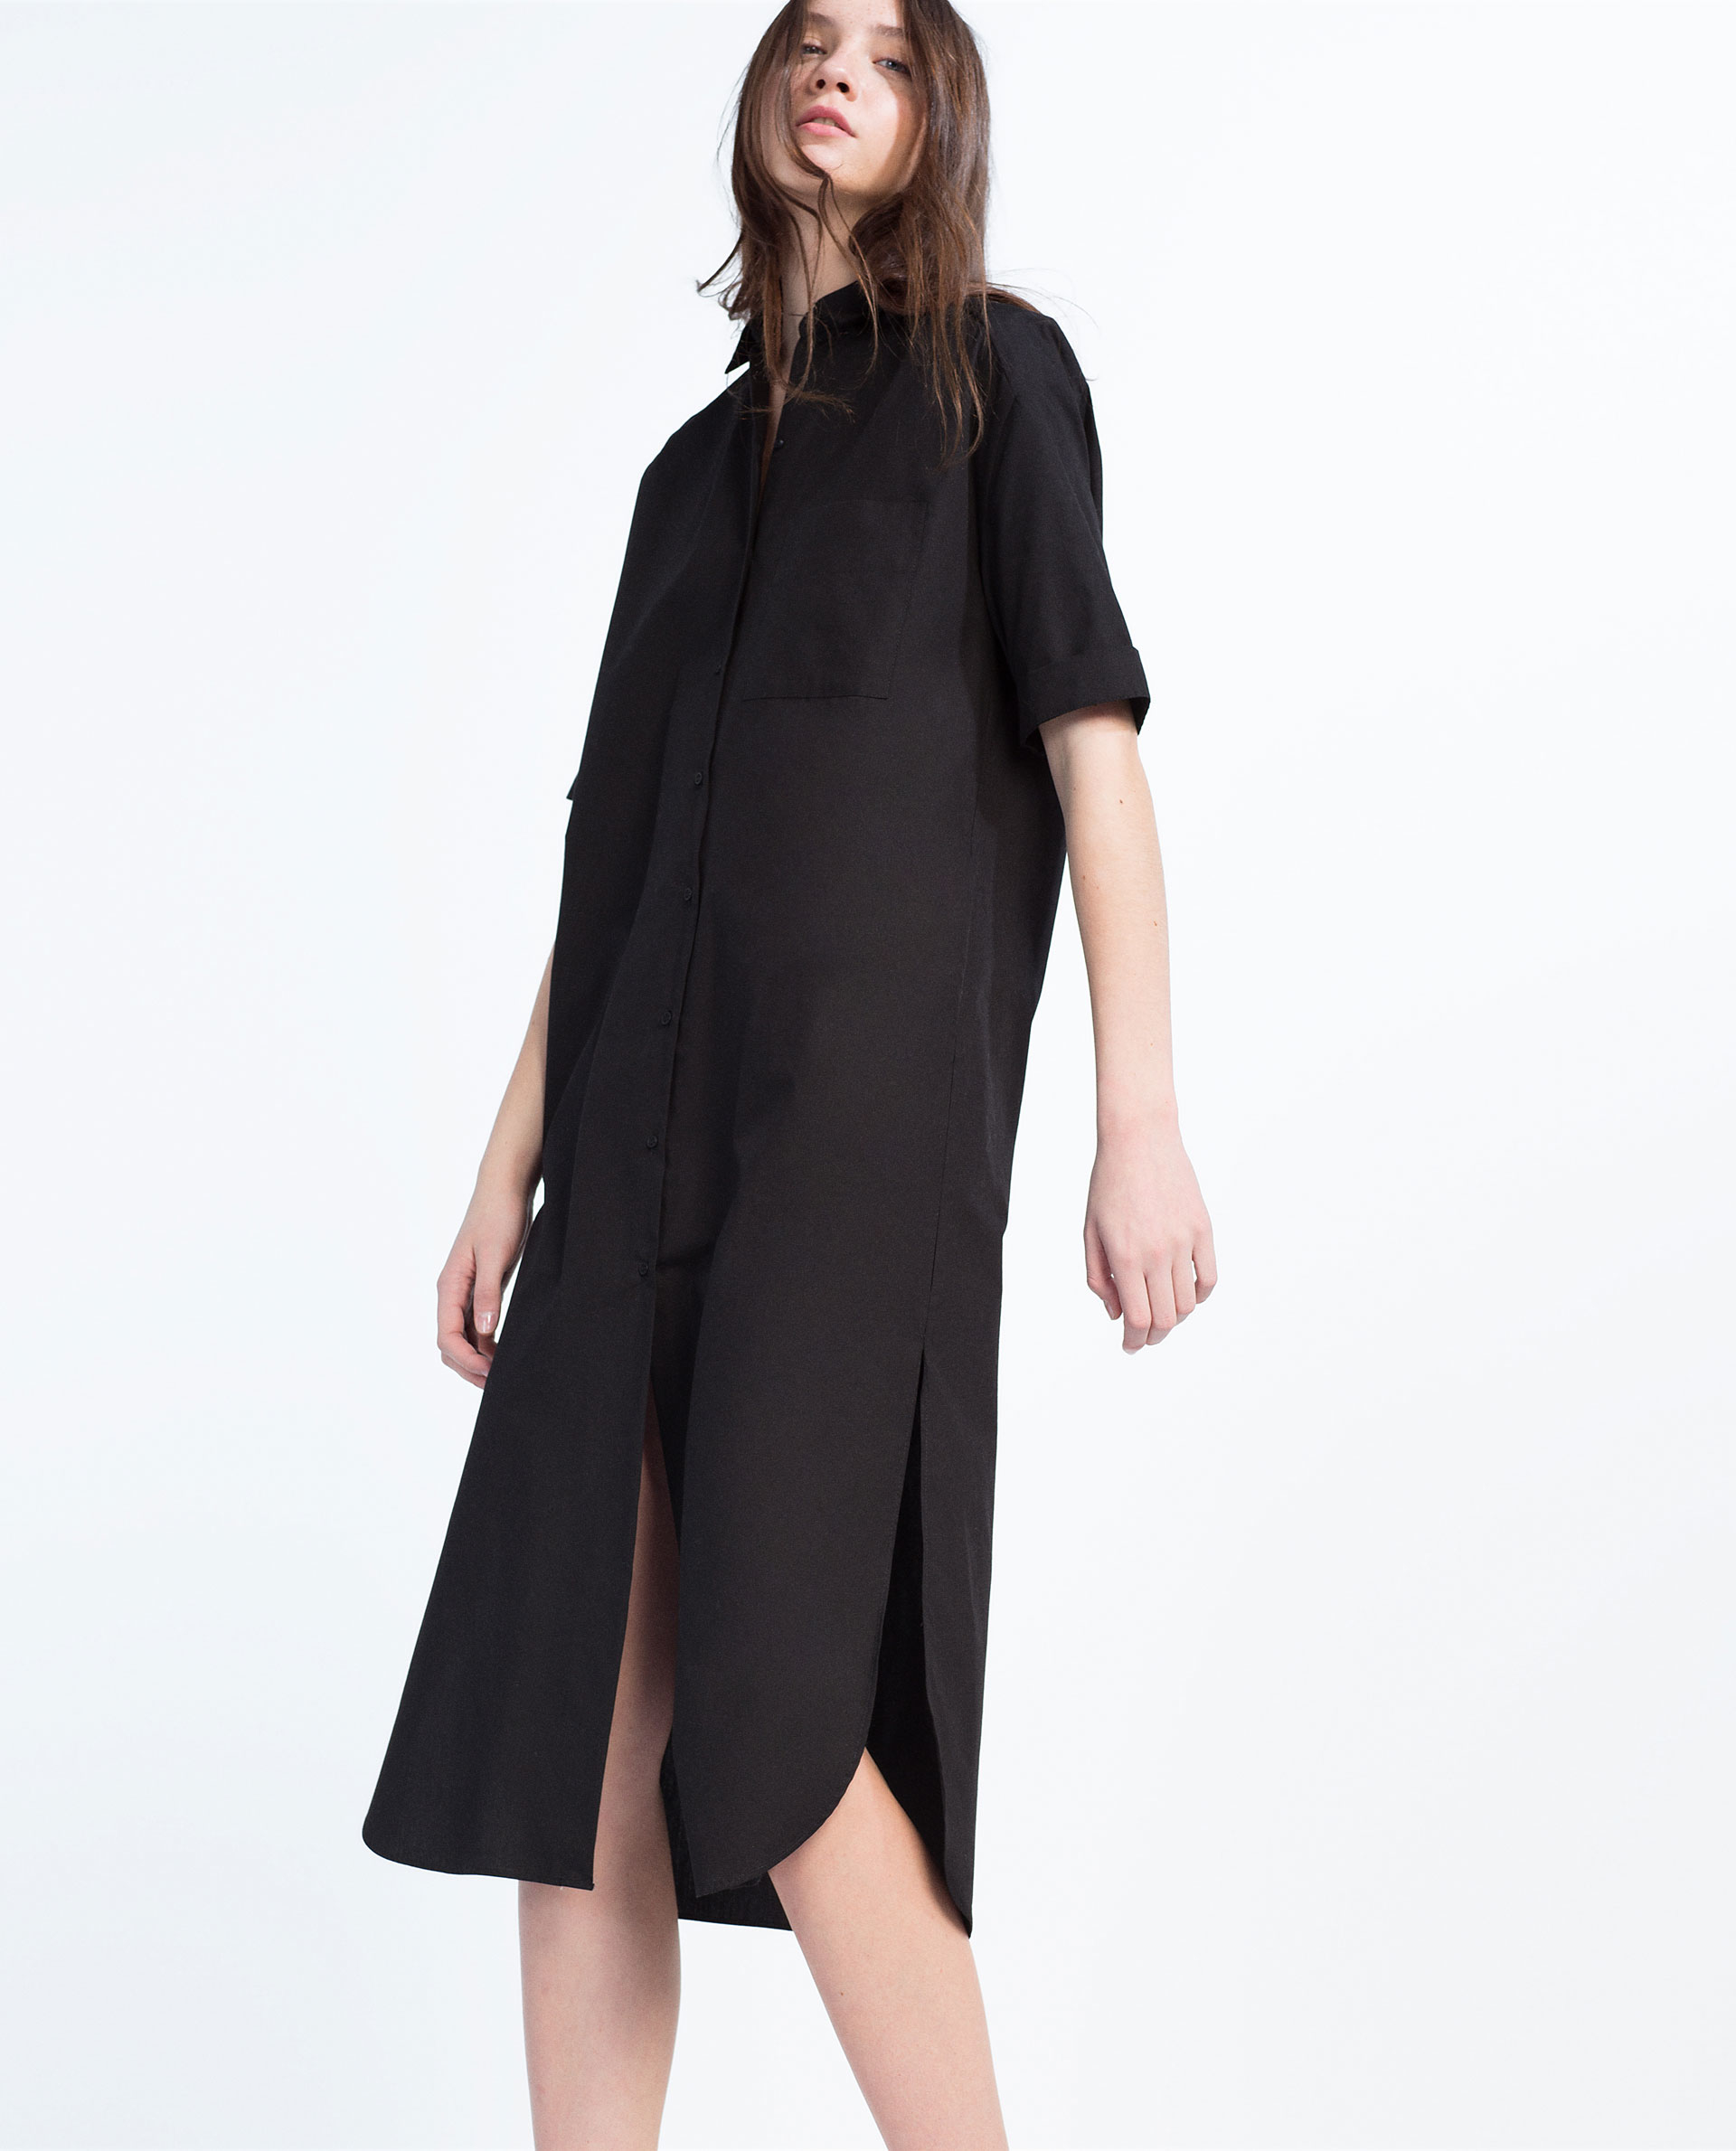 Perfect Black Dress  Shirt Dress  Long Sleeve Dress  Shift Dress  4500